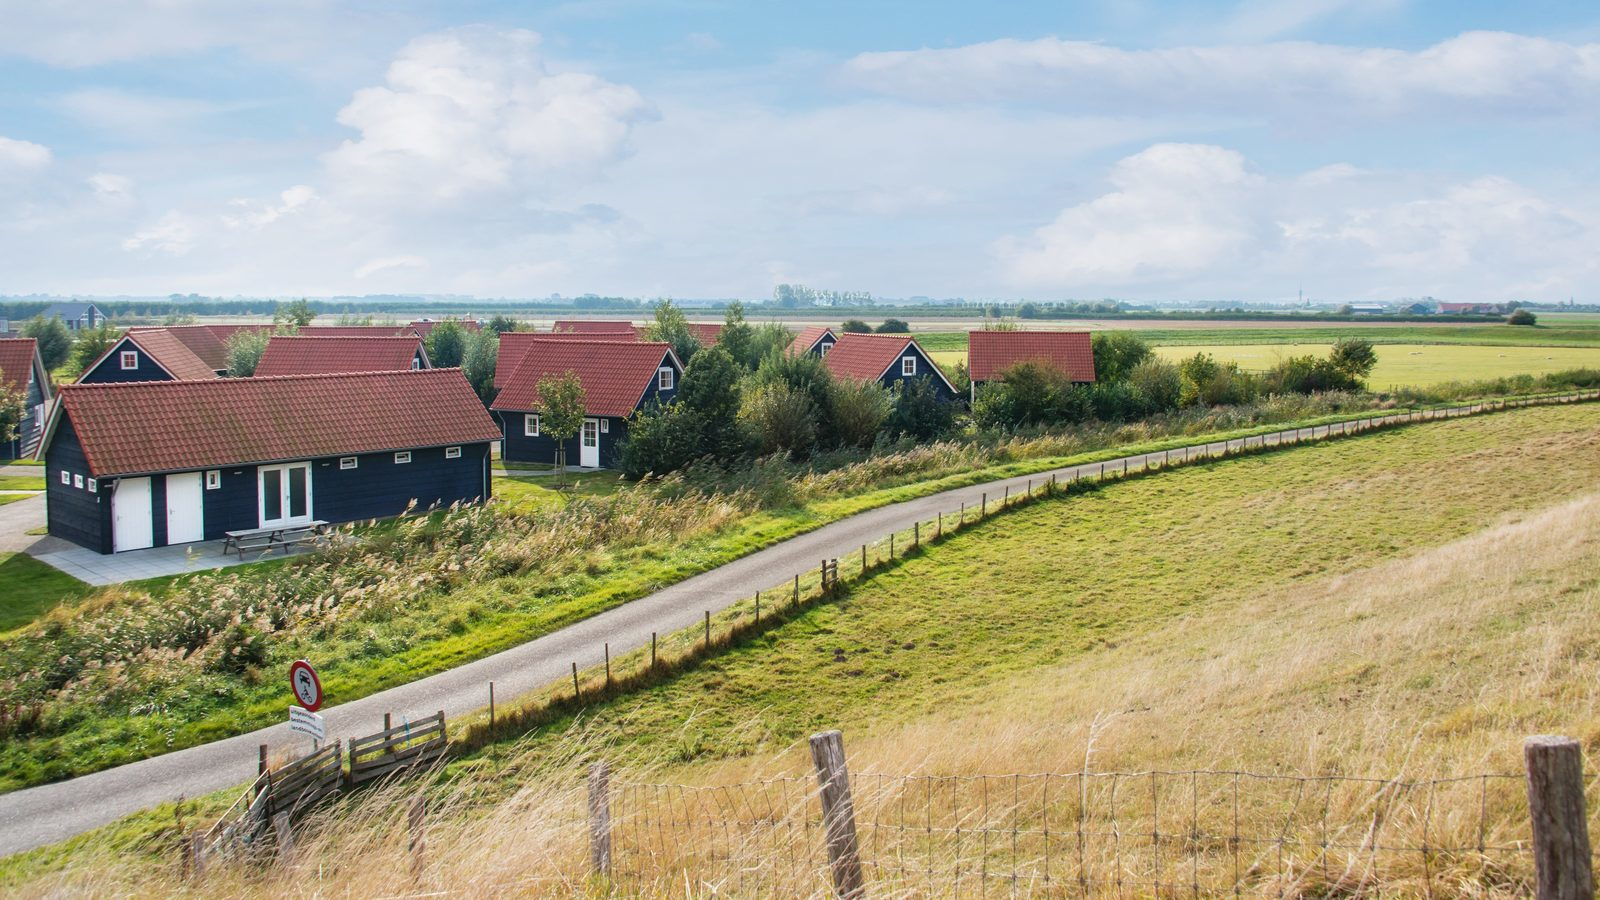 Zeeuwse cottages